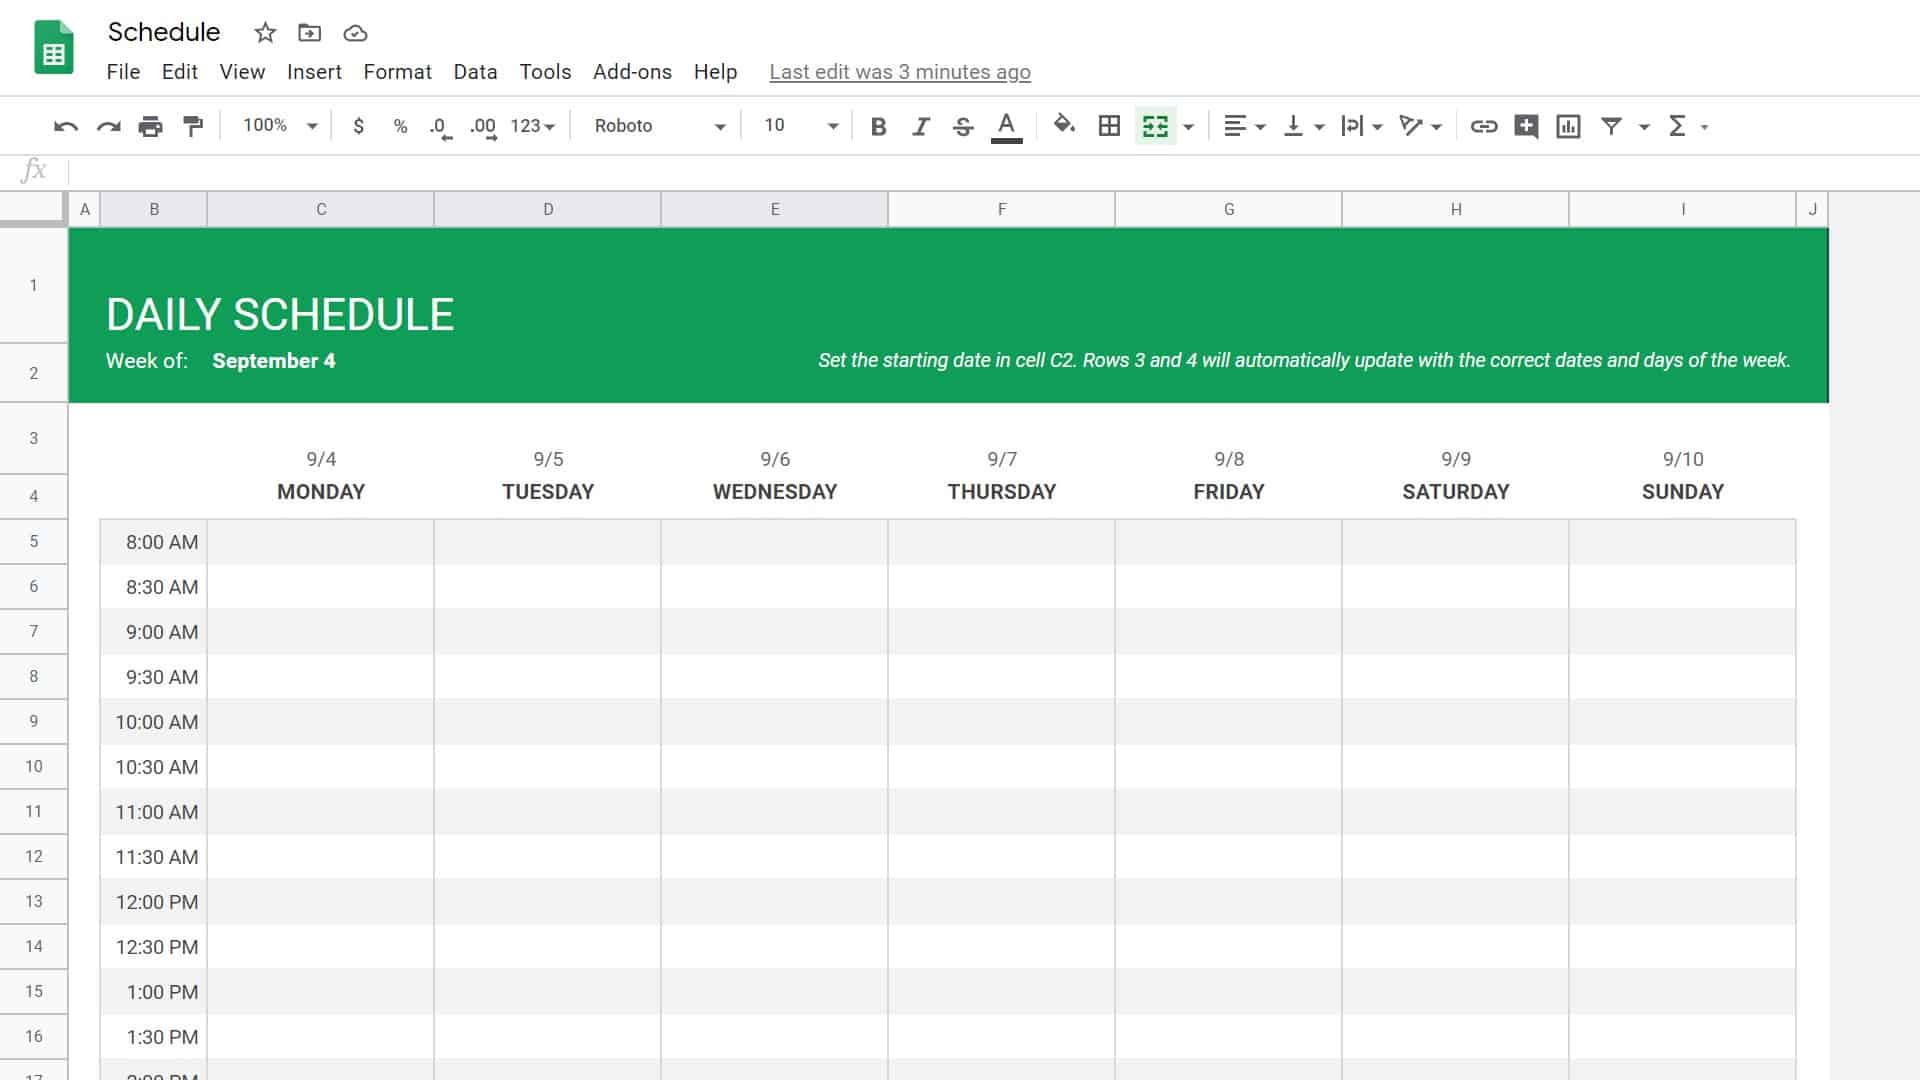 Full Size of Forecasting Spreadsheet Expense Tracking Template How To Make An Income And Online Excel Sheet